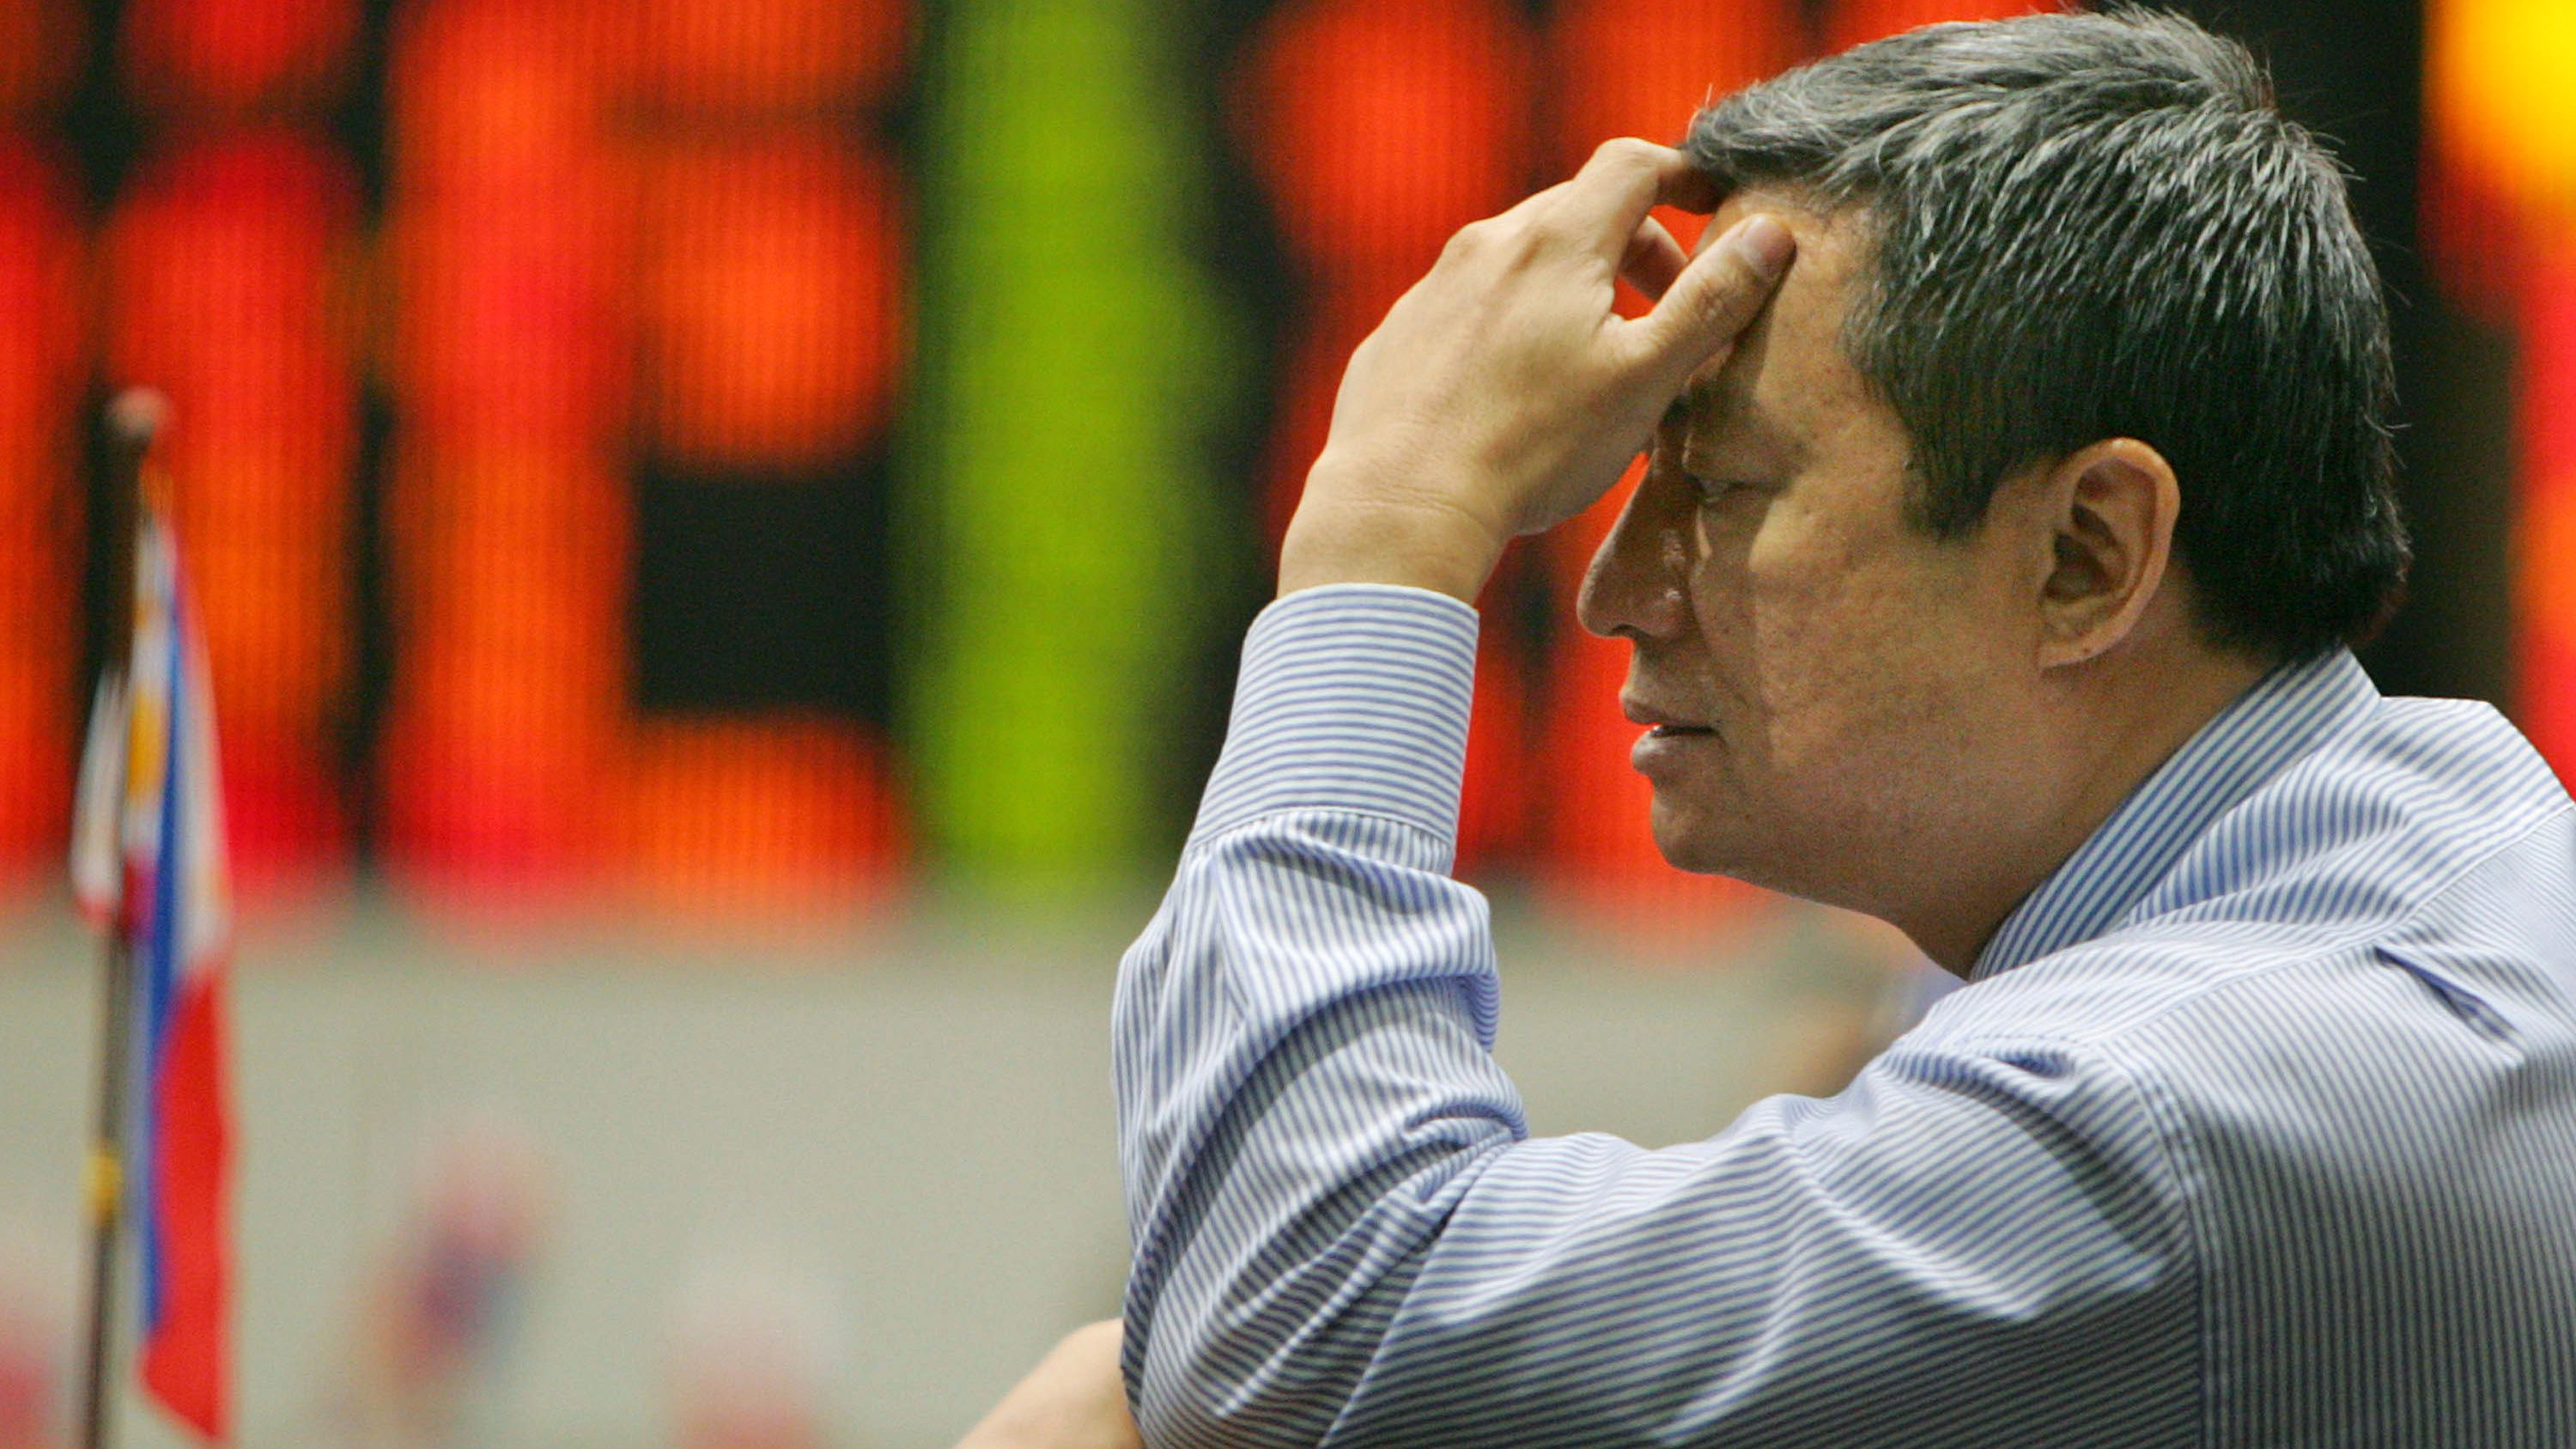 A trader contemplates as the electronic board shows figures in color red during trading at the Philippine Stock Exchange Tuesday, Sept. 30, 2008 in Manila's financial district of Makati. The composite index fell 37.93 points to 2,569.65 after plunging 6.0 percent in early trade with shares closing 1.4 percent lower following the the collapse of the Wall Street bailout package.